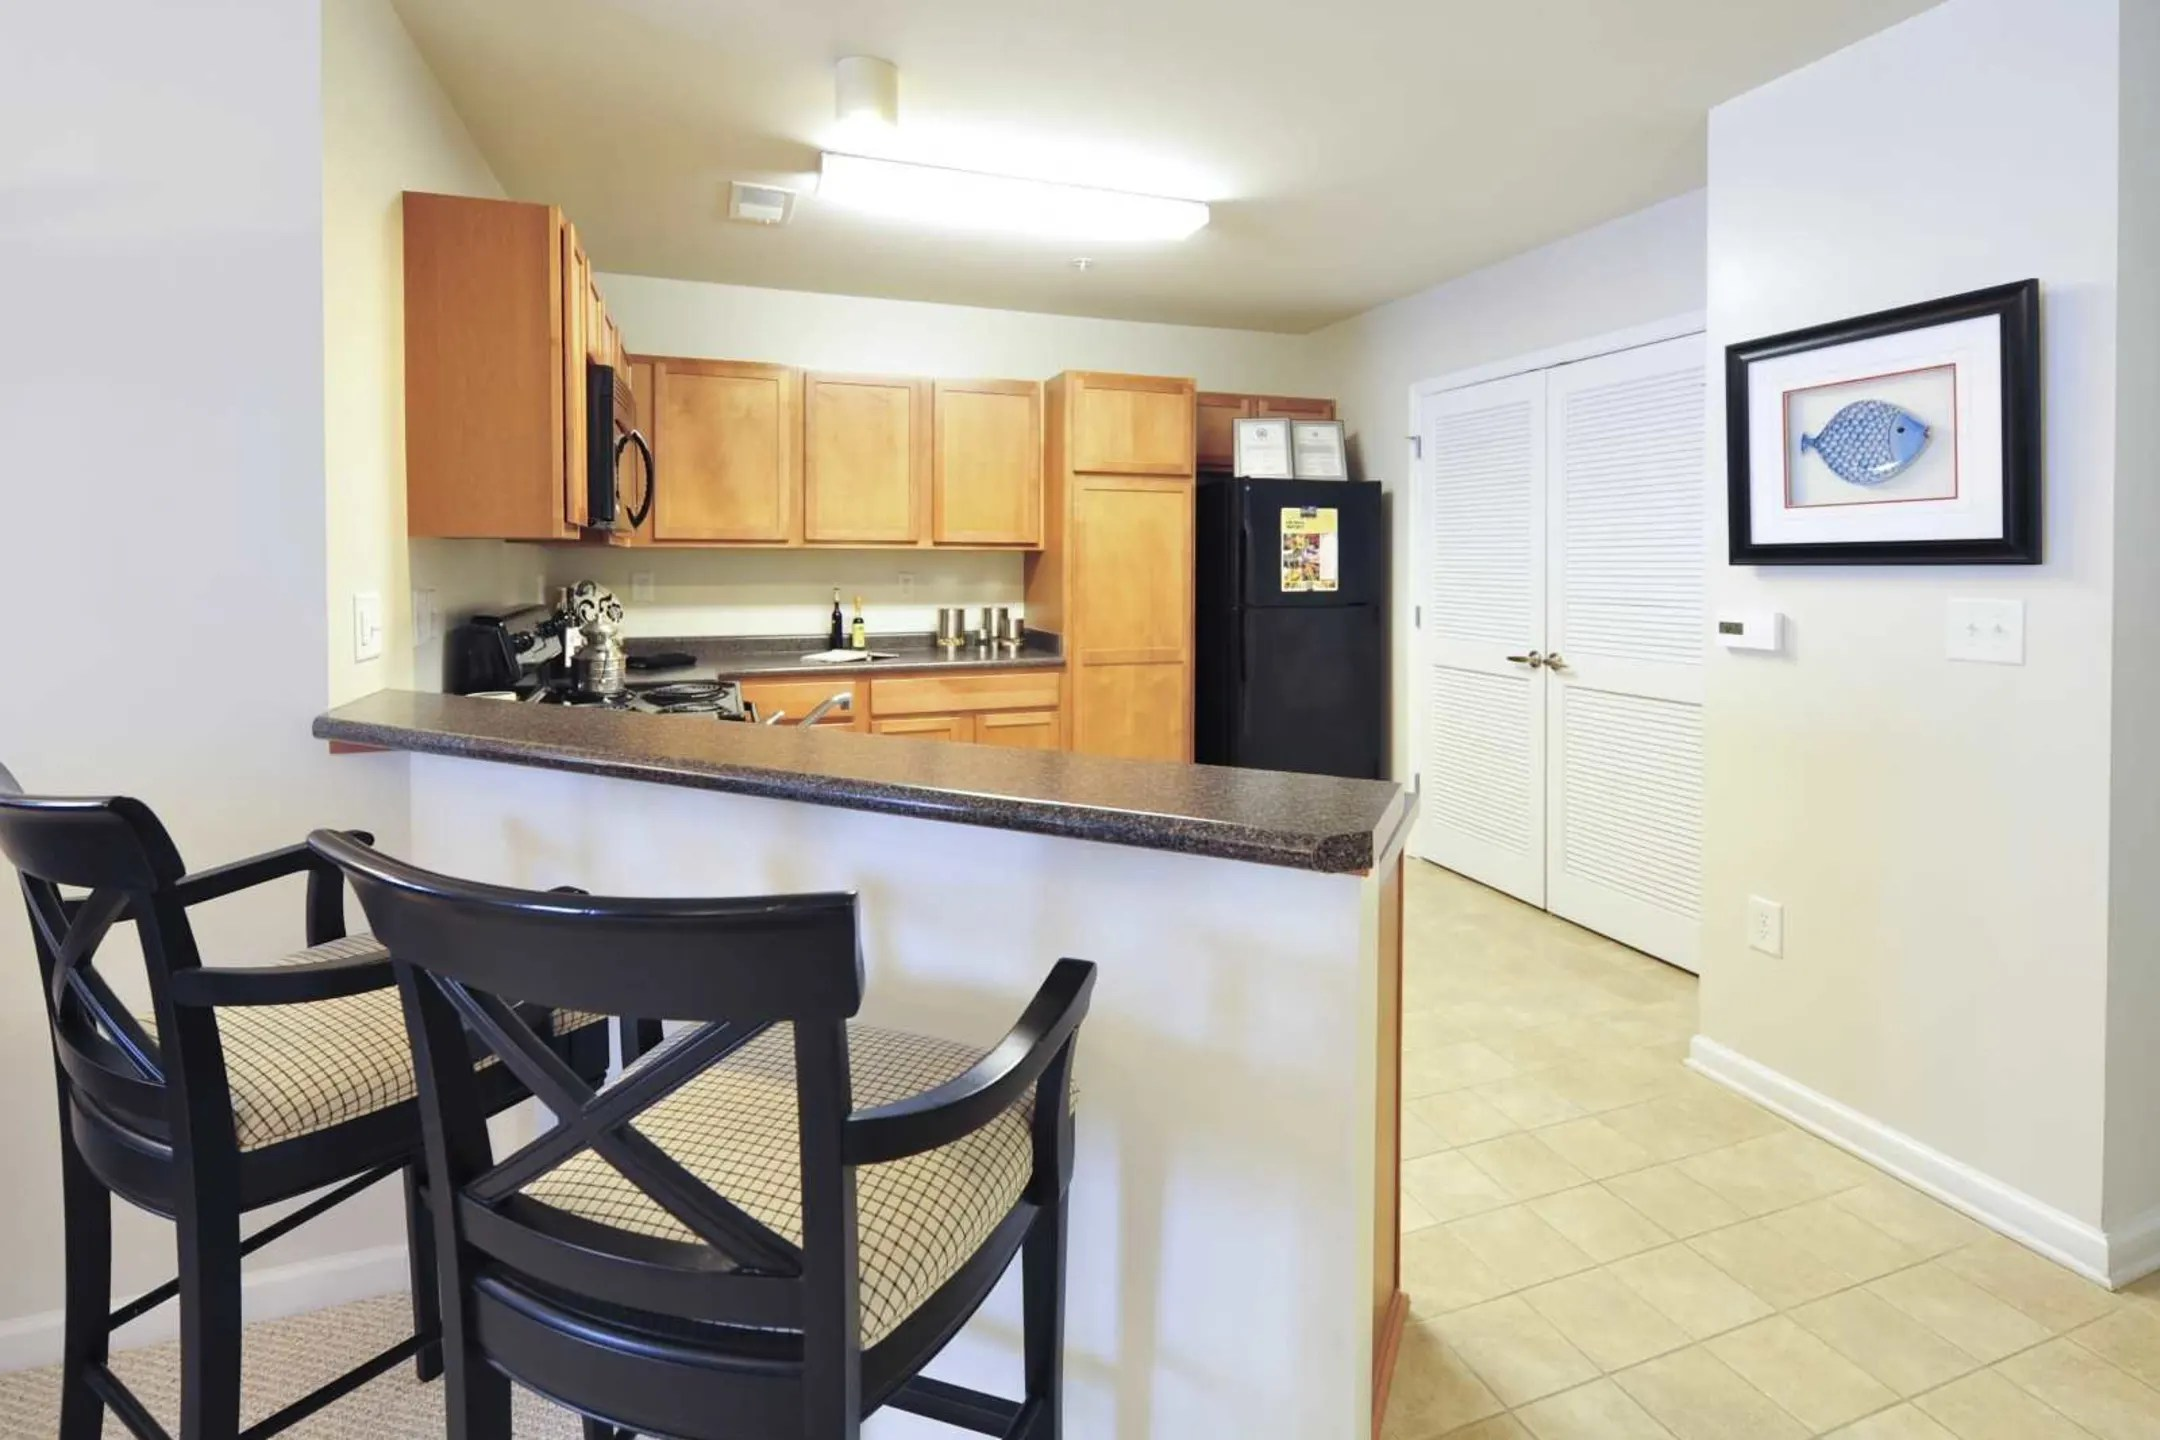 black stainless steel kitchen sink particle board cabinets the heritage at settlers landing apartments - hampton, va ...